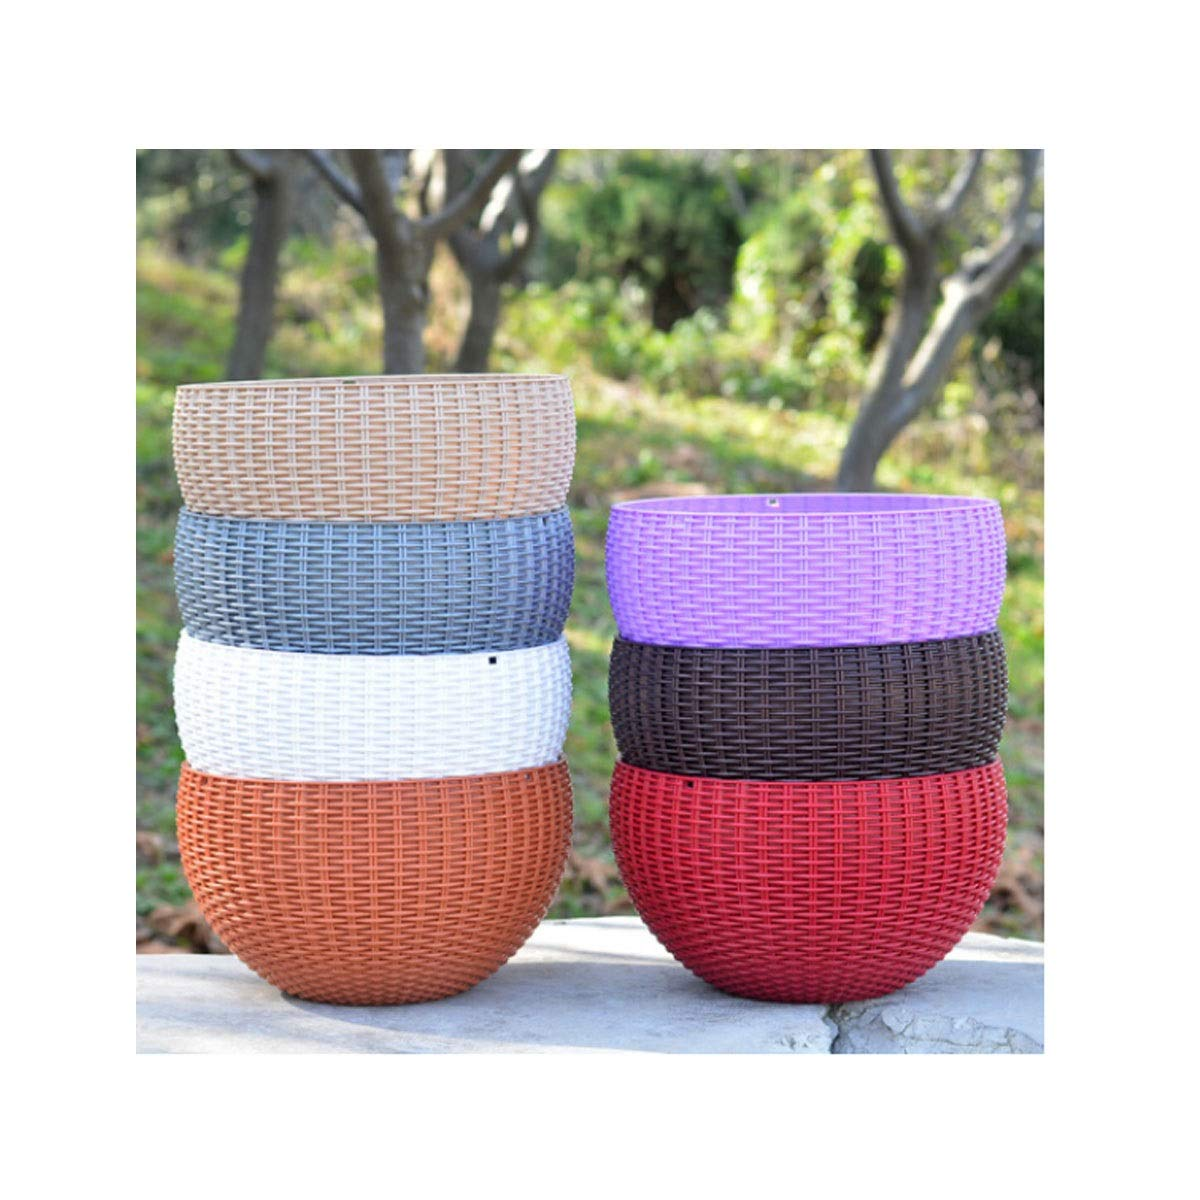 HUIJUNWENTI Bamboo Baskets, Plastic Resin Round Hanging Flower Pots, Creative Green Lotus Flower Pots, (Color : Coffee, Size : L) by HUIJUNWENTI